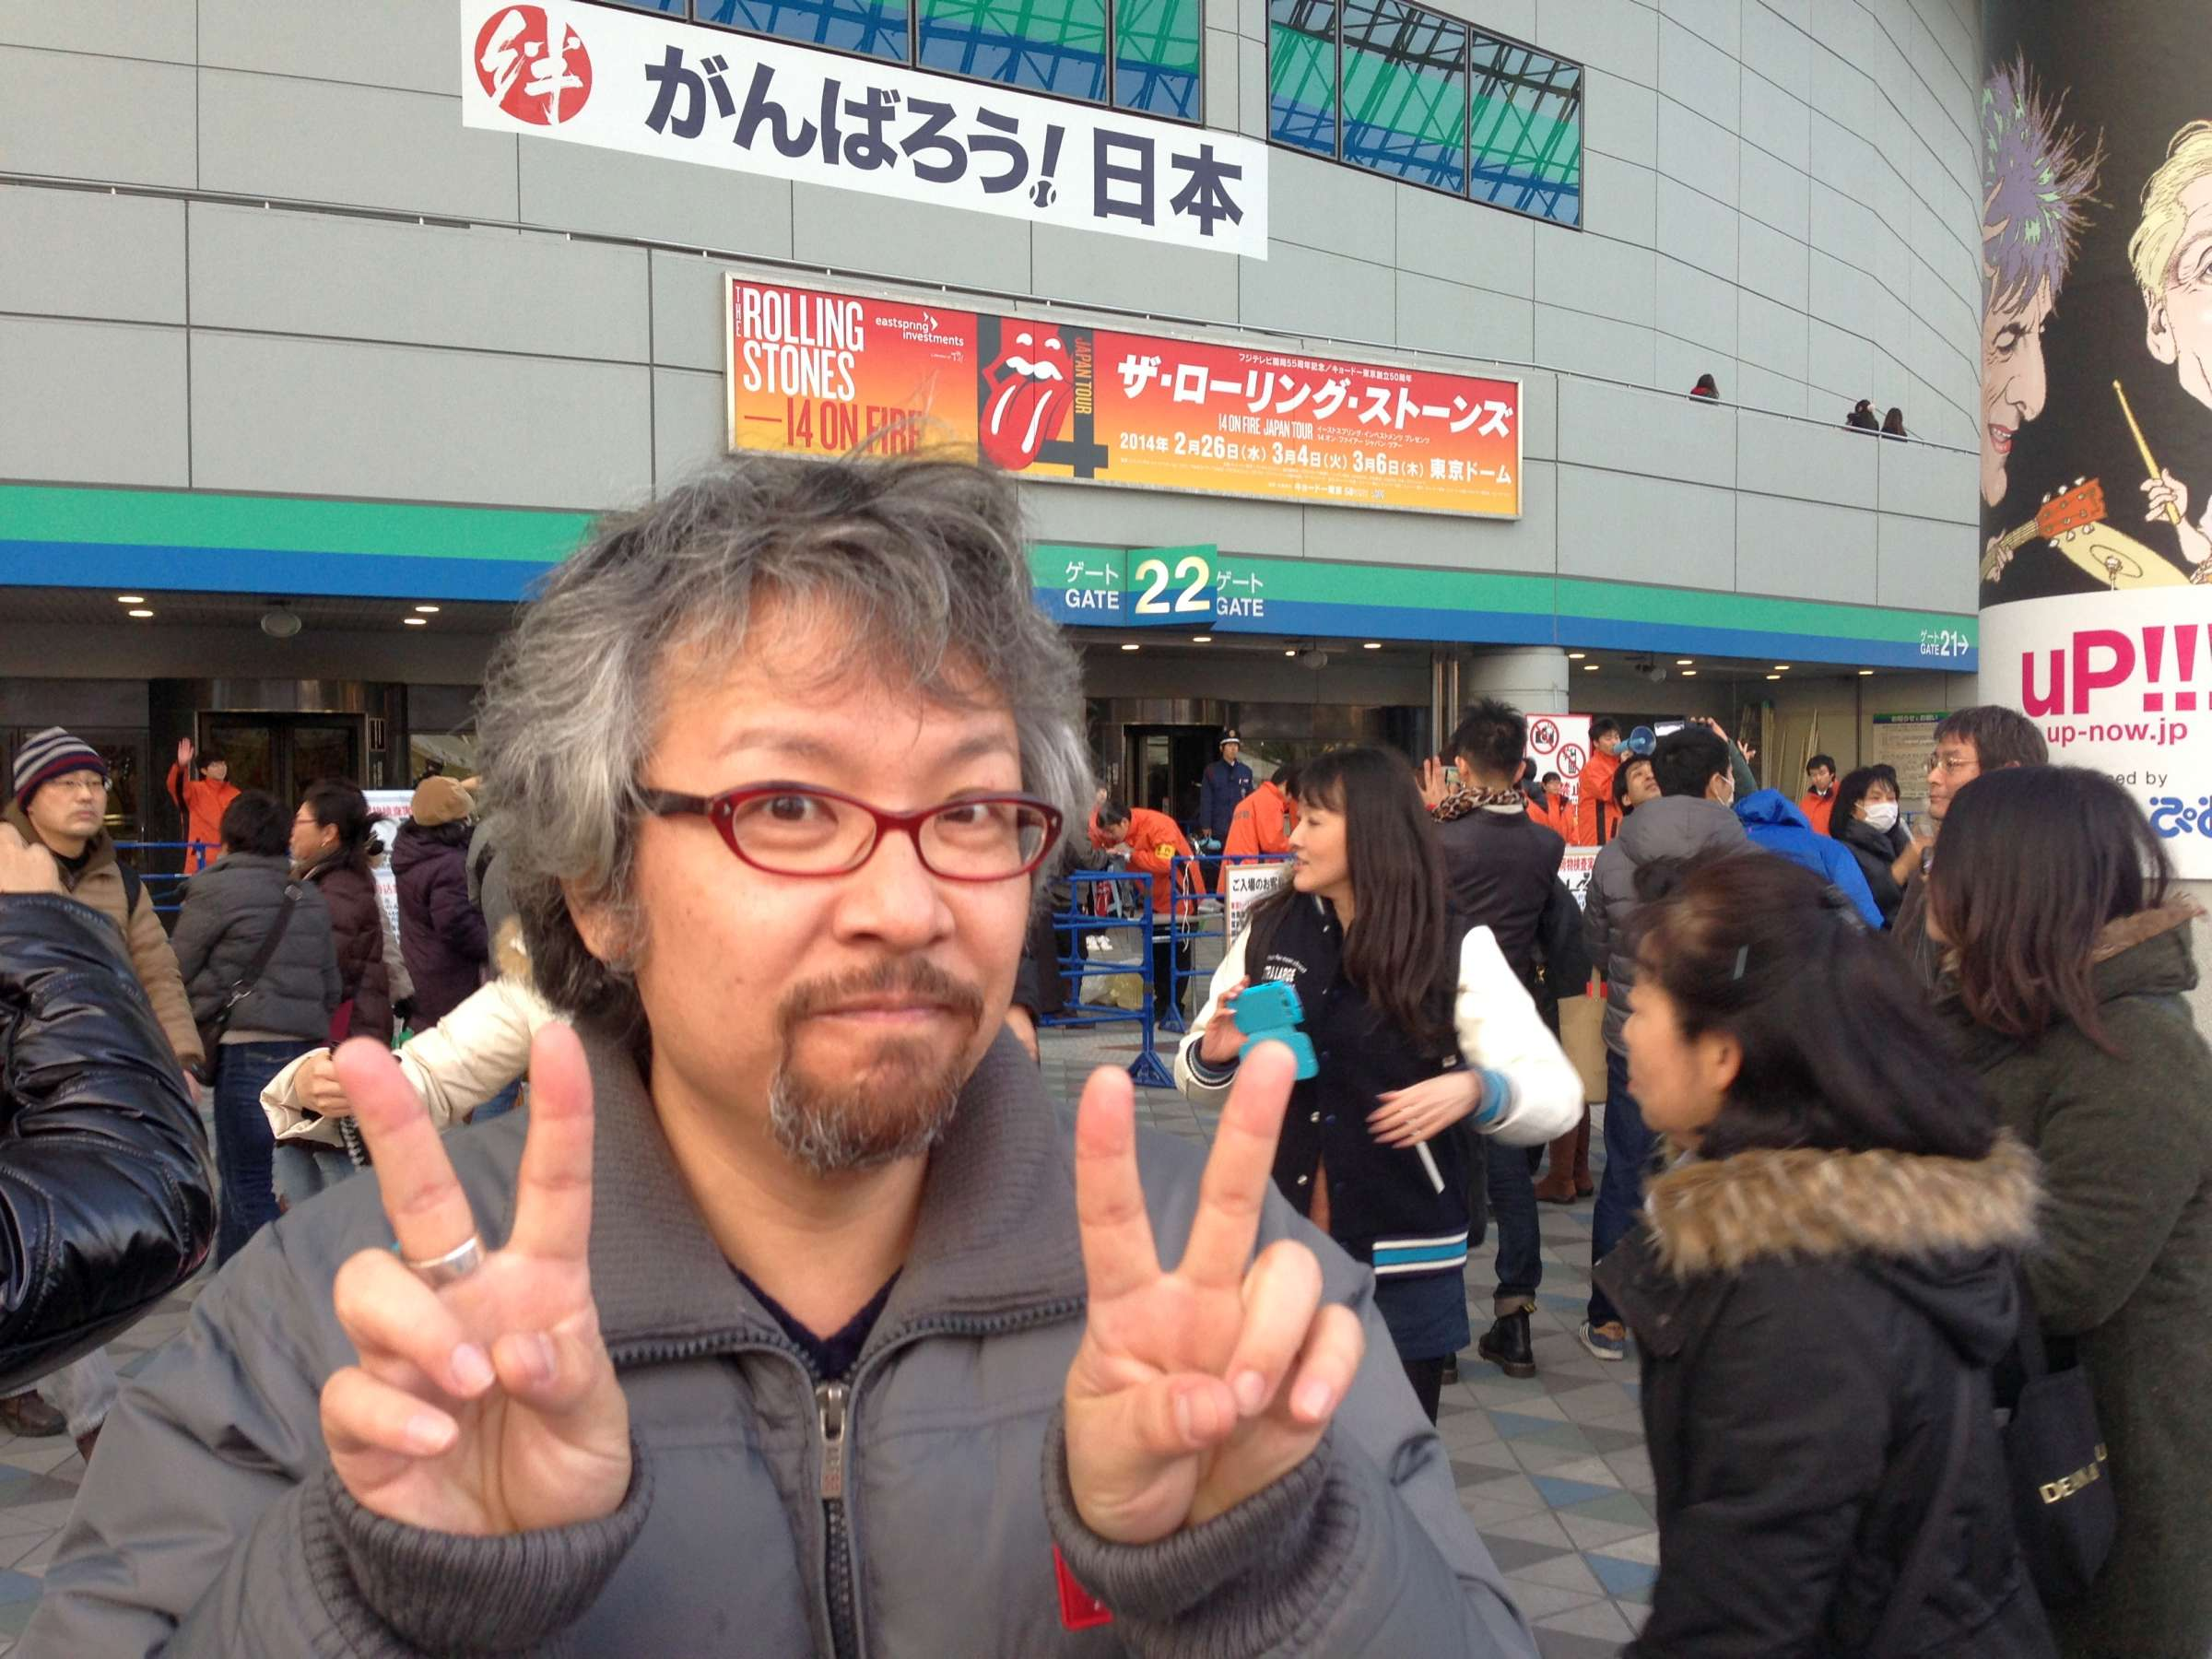 The Rolling Stones - 14 ON FIRE JAPAN TOUR